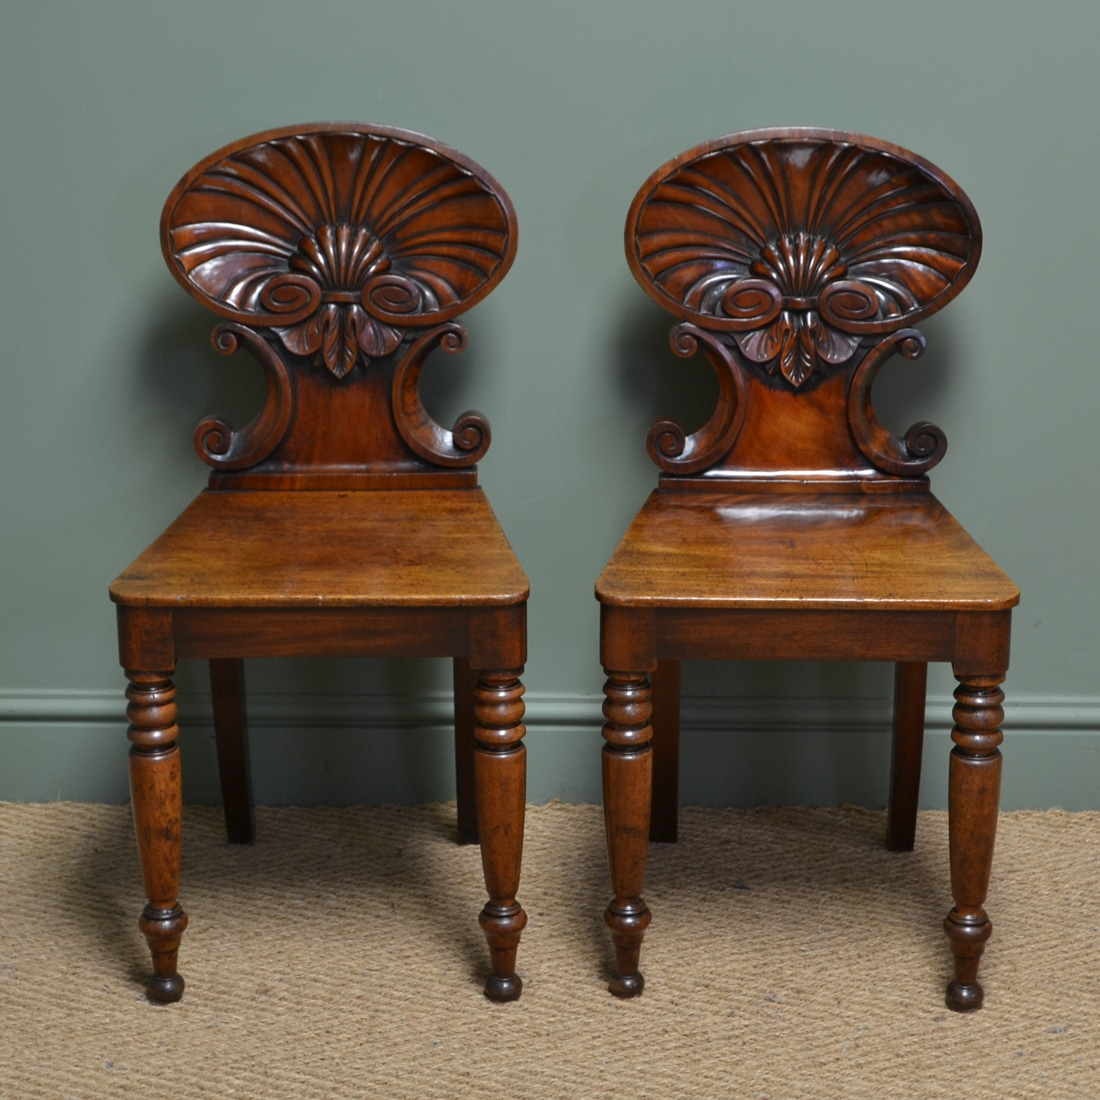 Antique Hall Chairs - Antique Hall Chairs - Antiques World